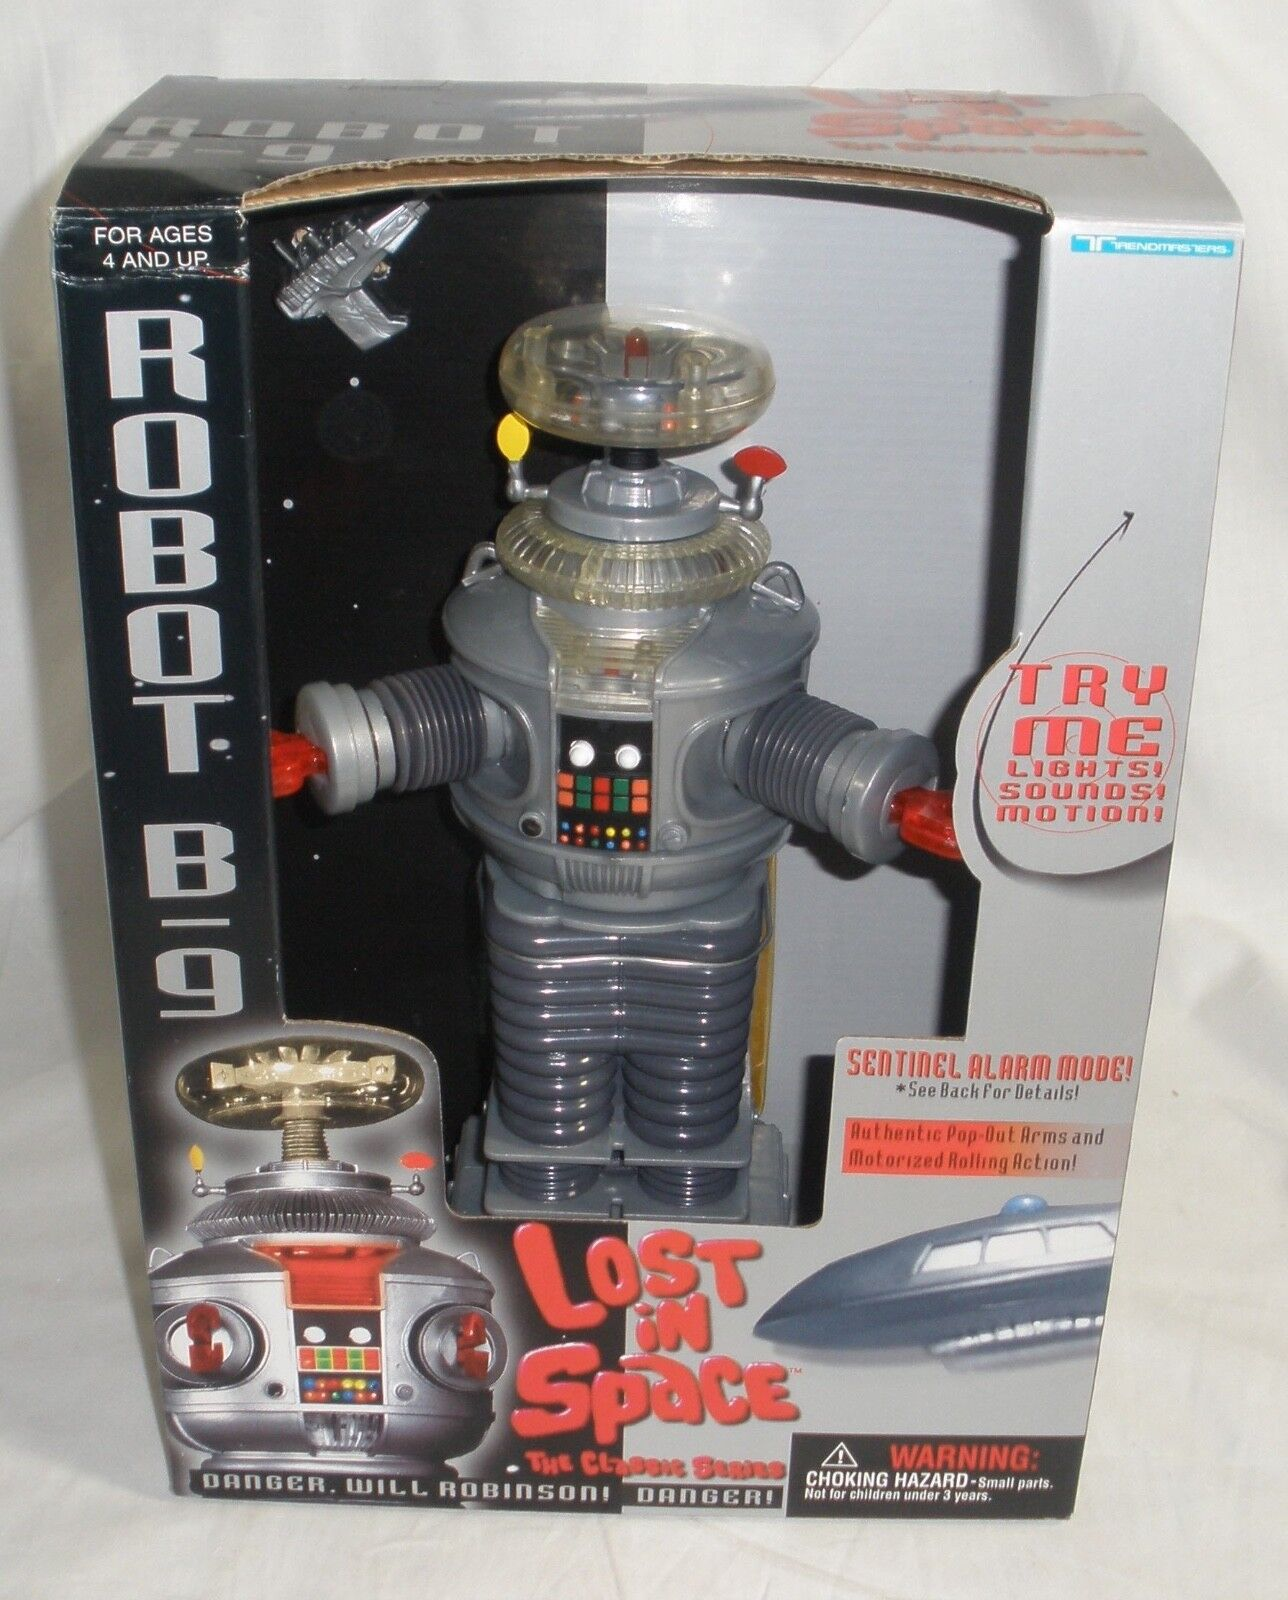 Lost in Space Robot B9 Mint in box Collectors Quality Condition Trendmasters